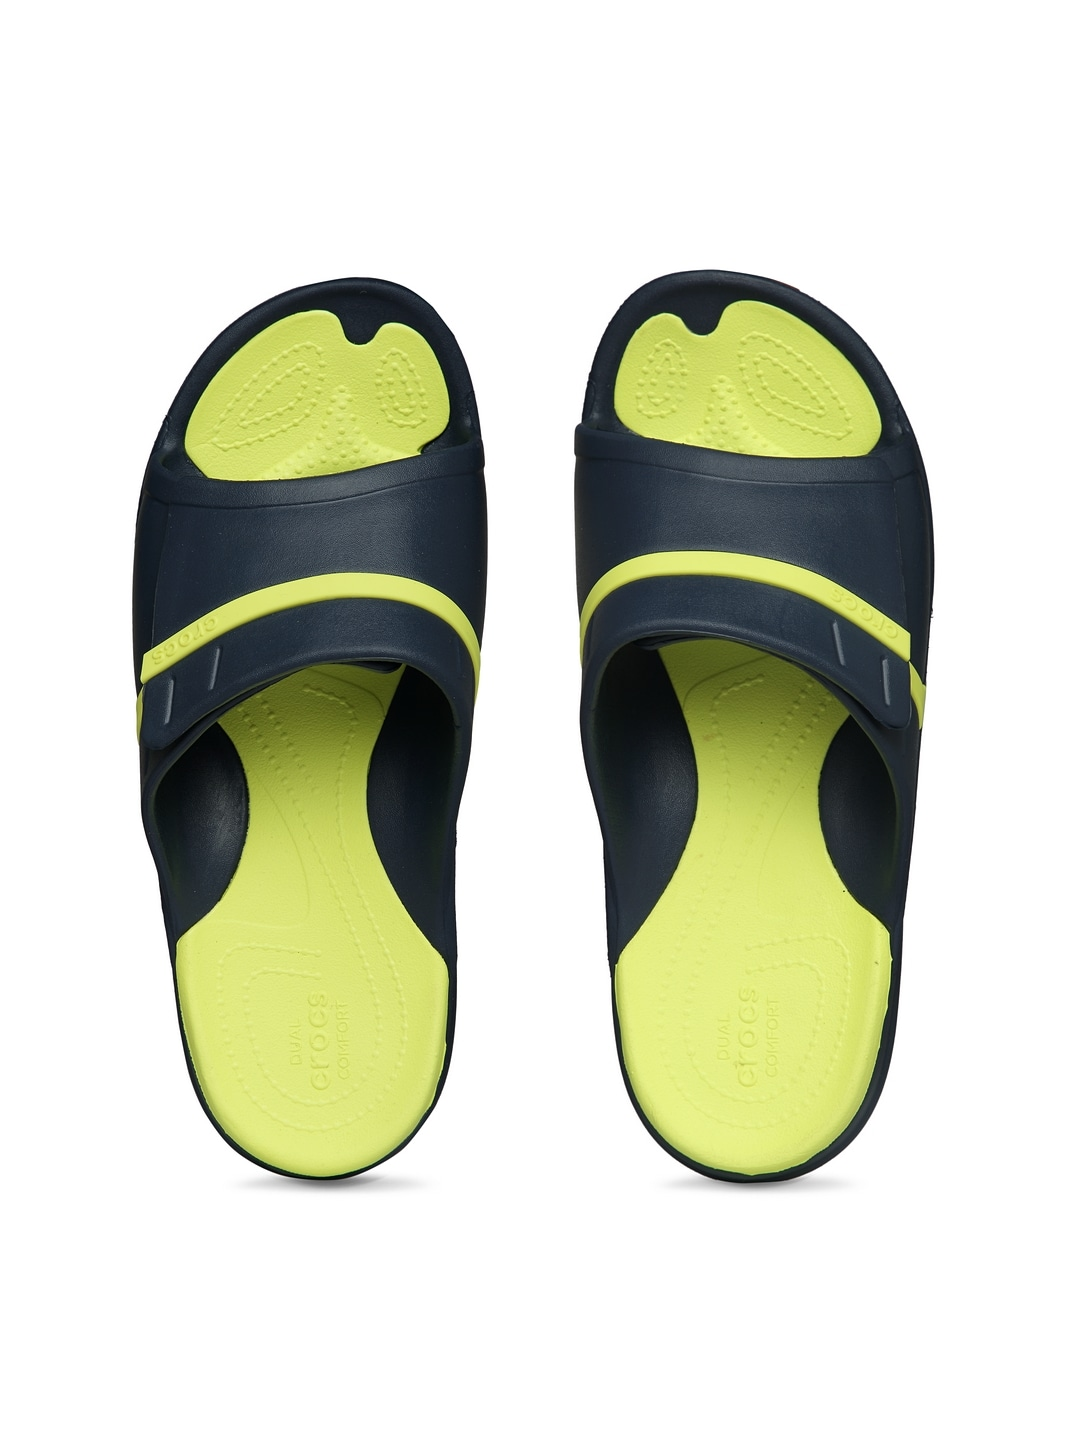 35ea7c0b02cbc6 Slides Flip Flops - Buy Slides Flip Flops online in India